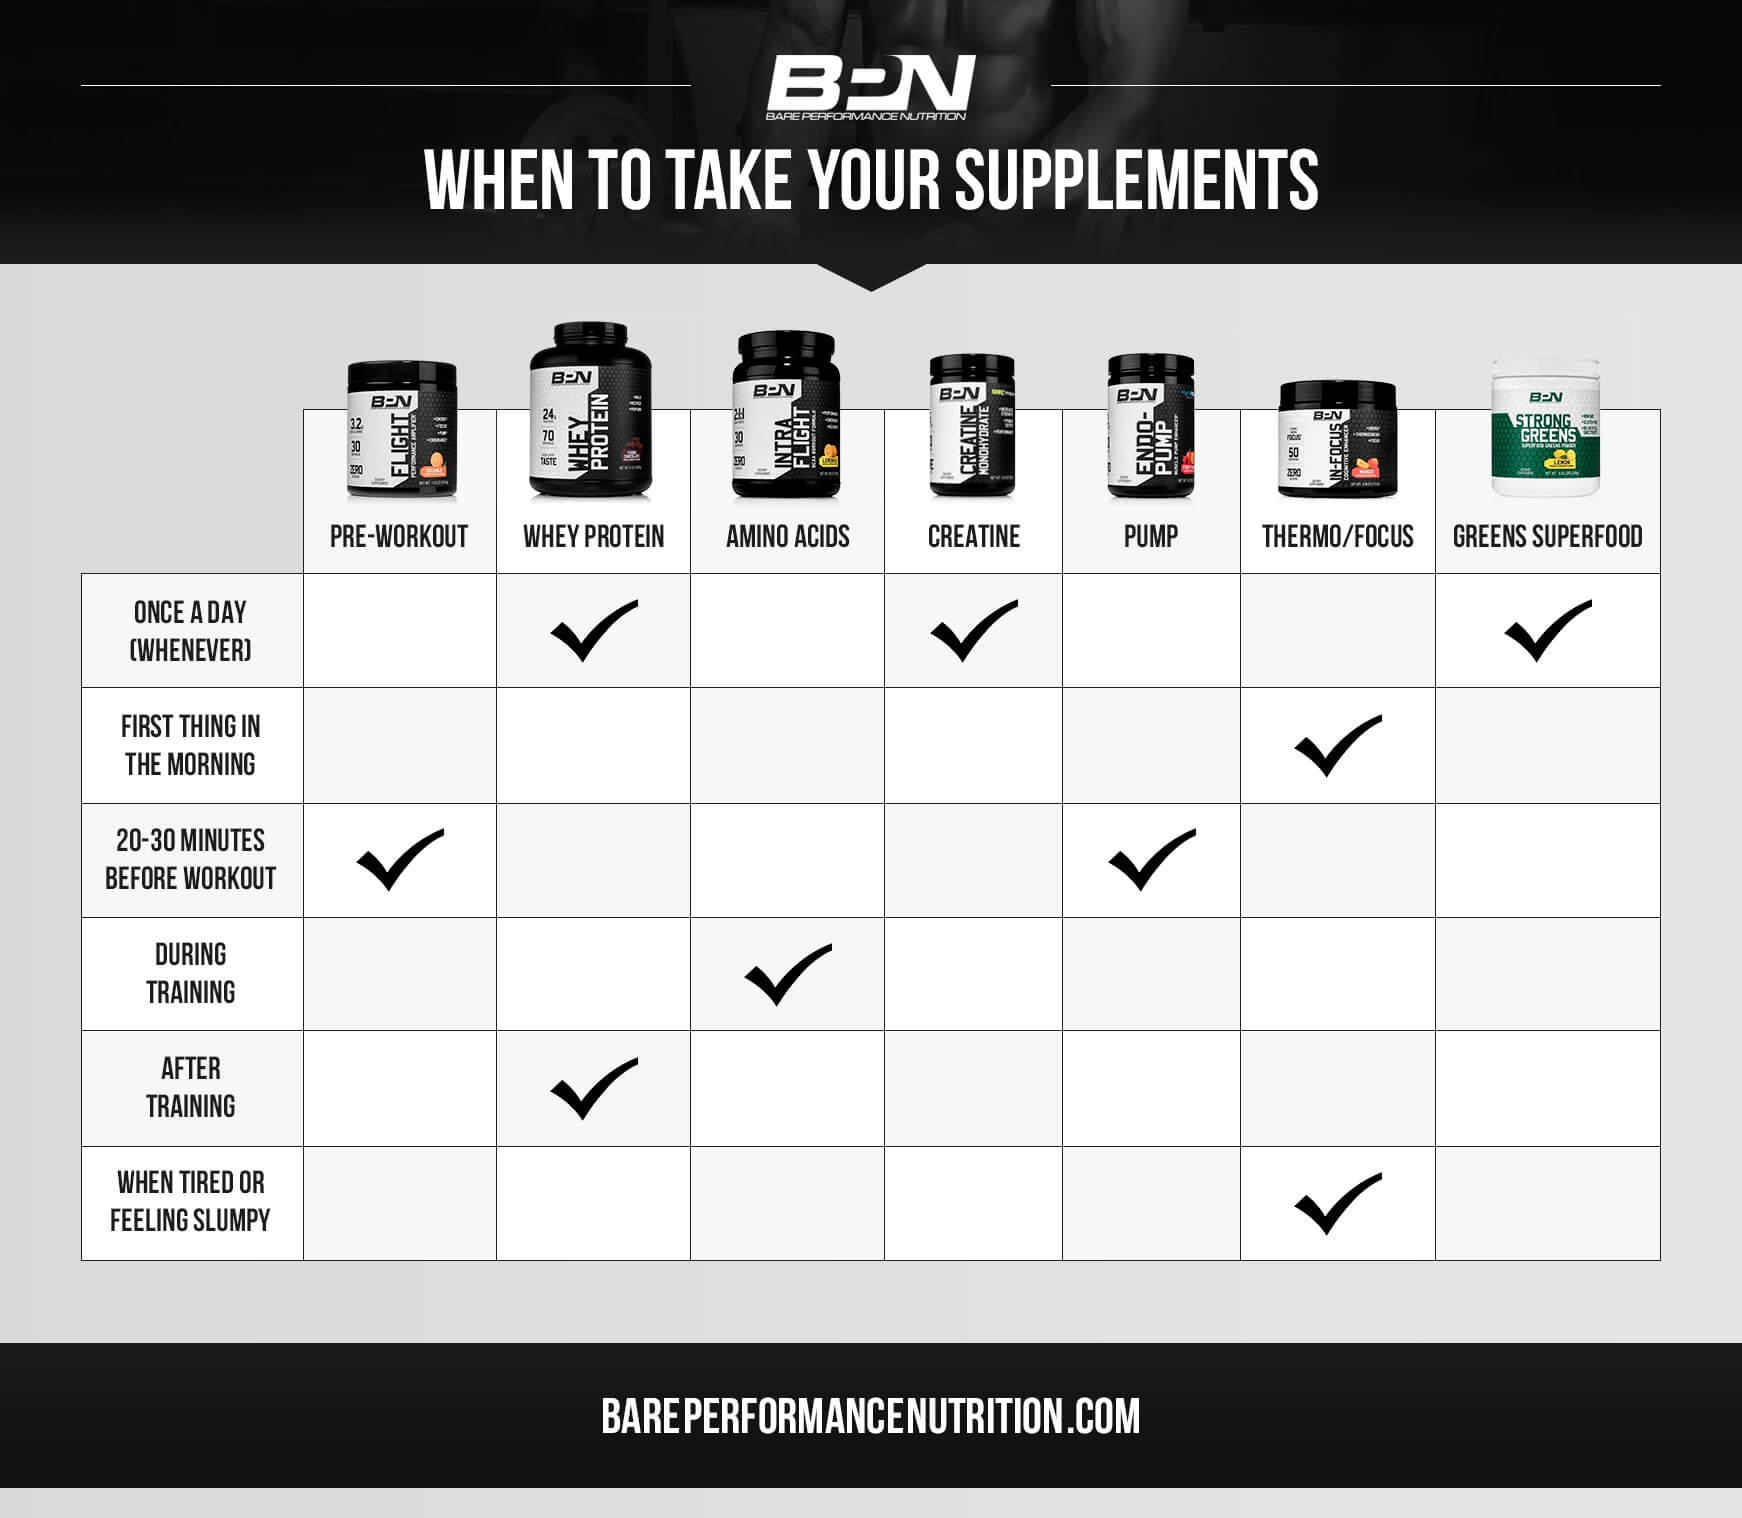 When to take Supplements